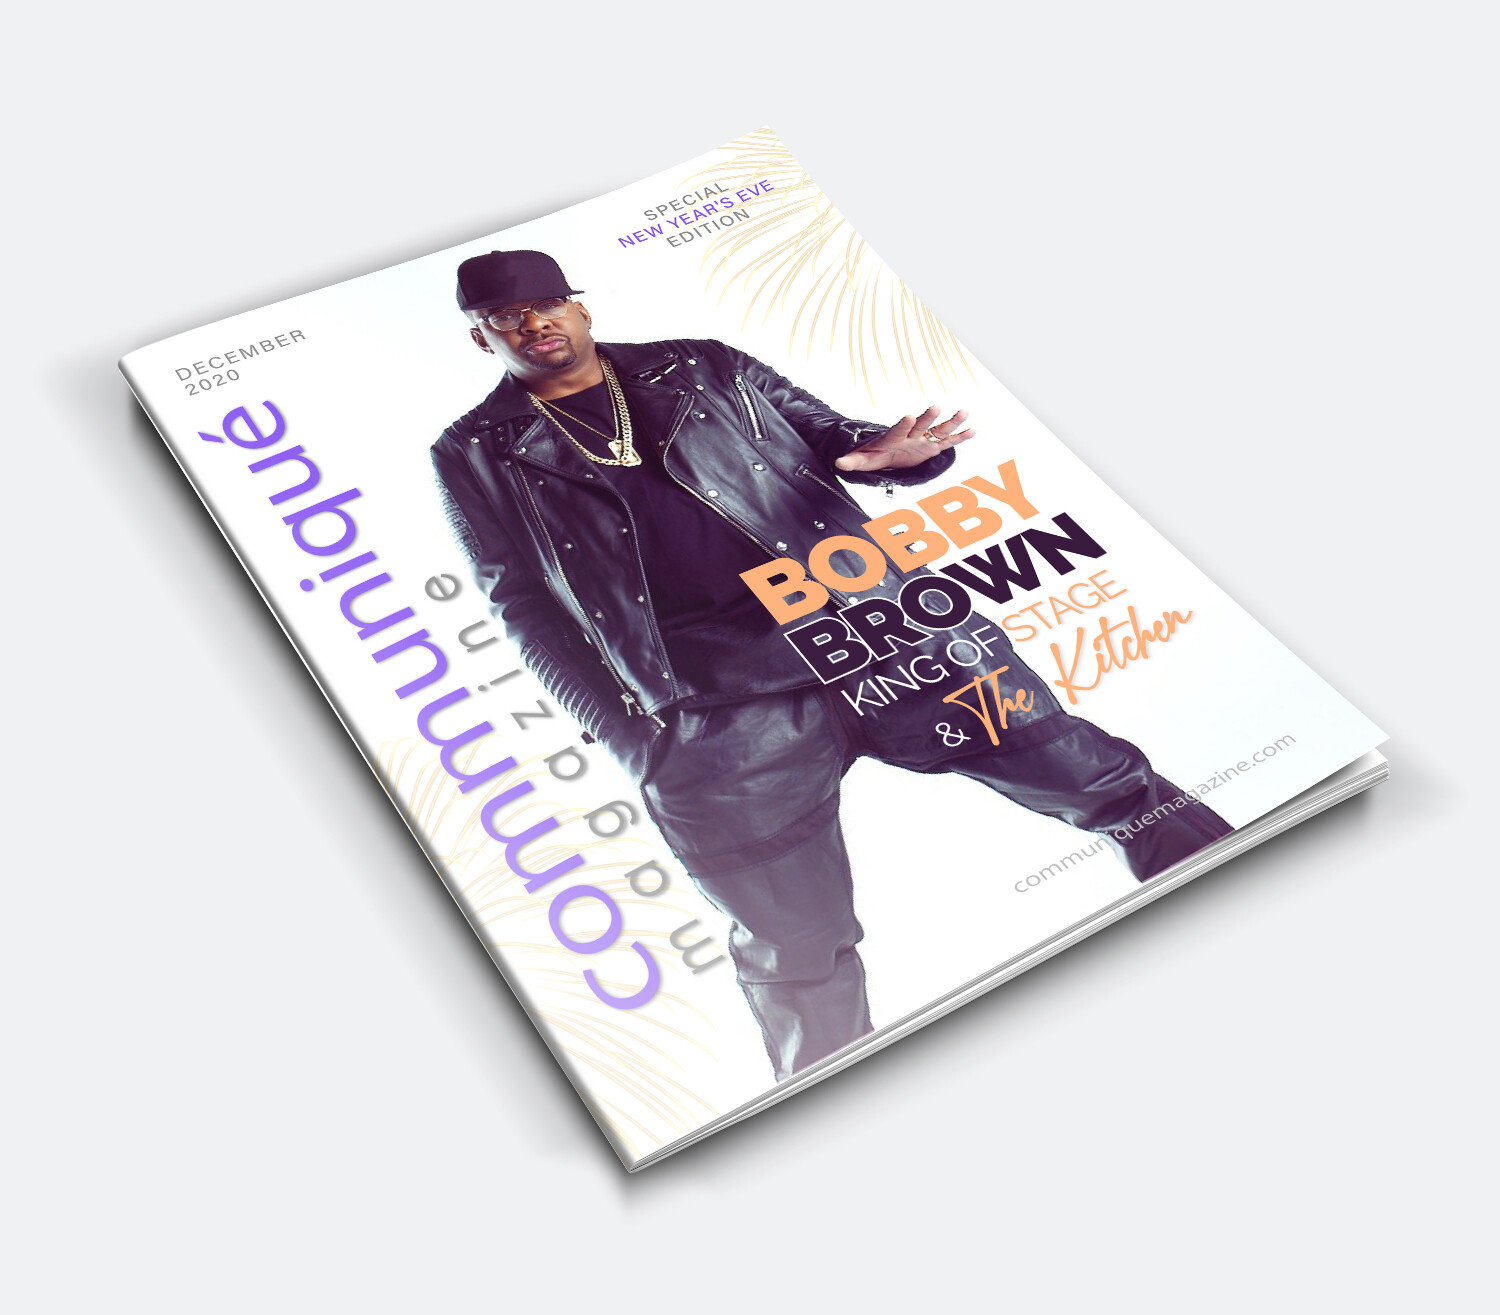 Special New Year's Eve Edition - Bobby Brown (DECEMBER)